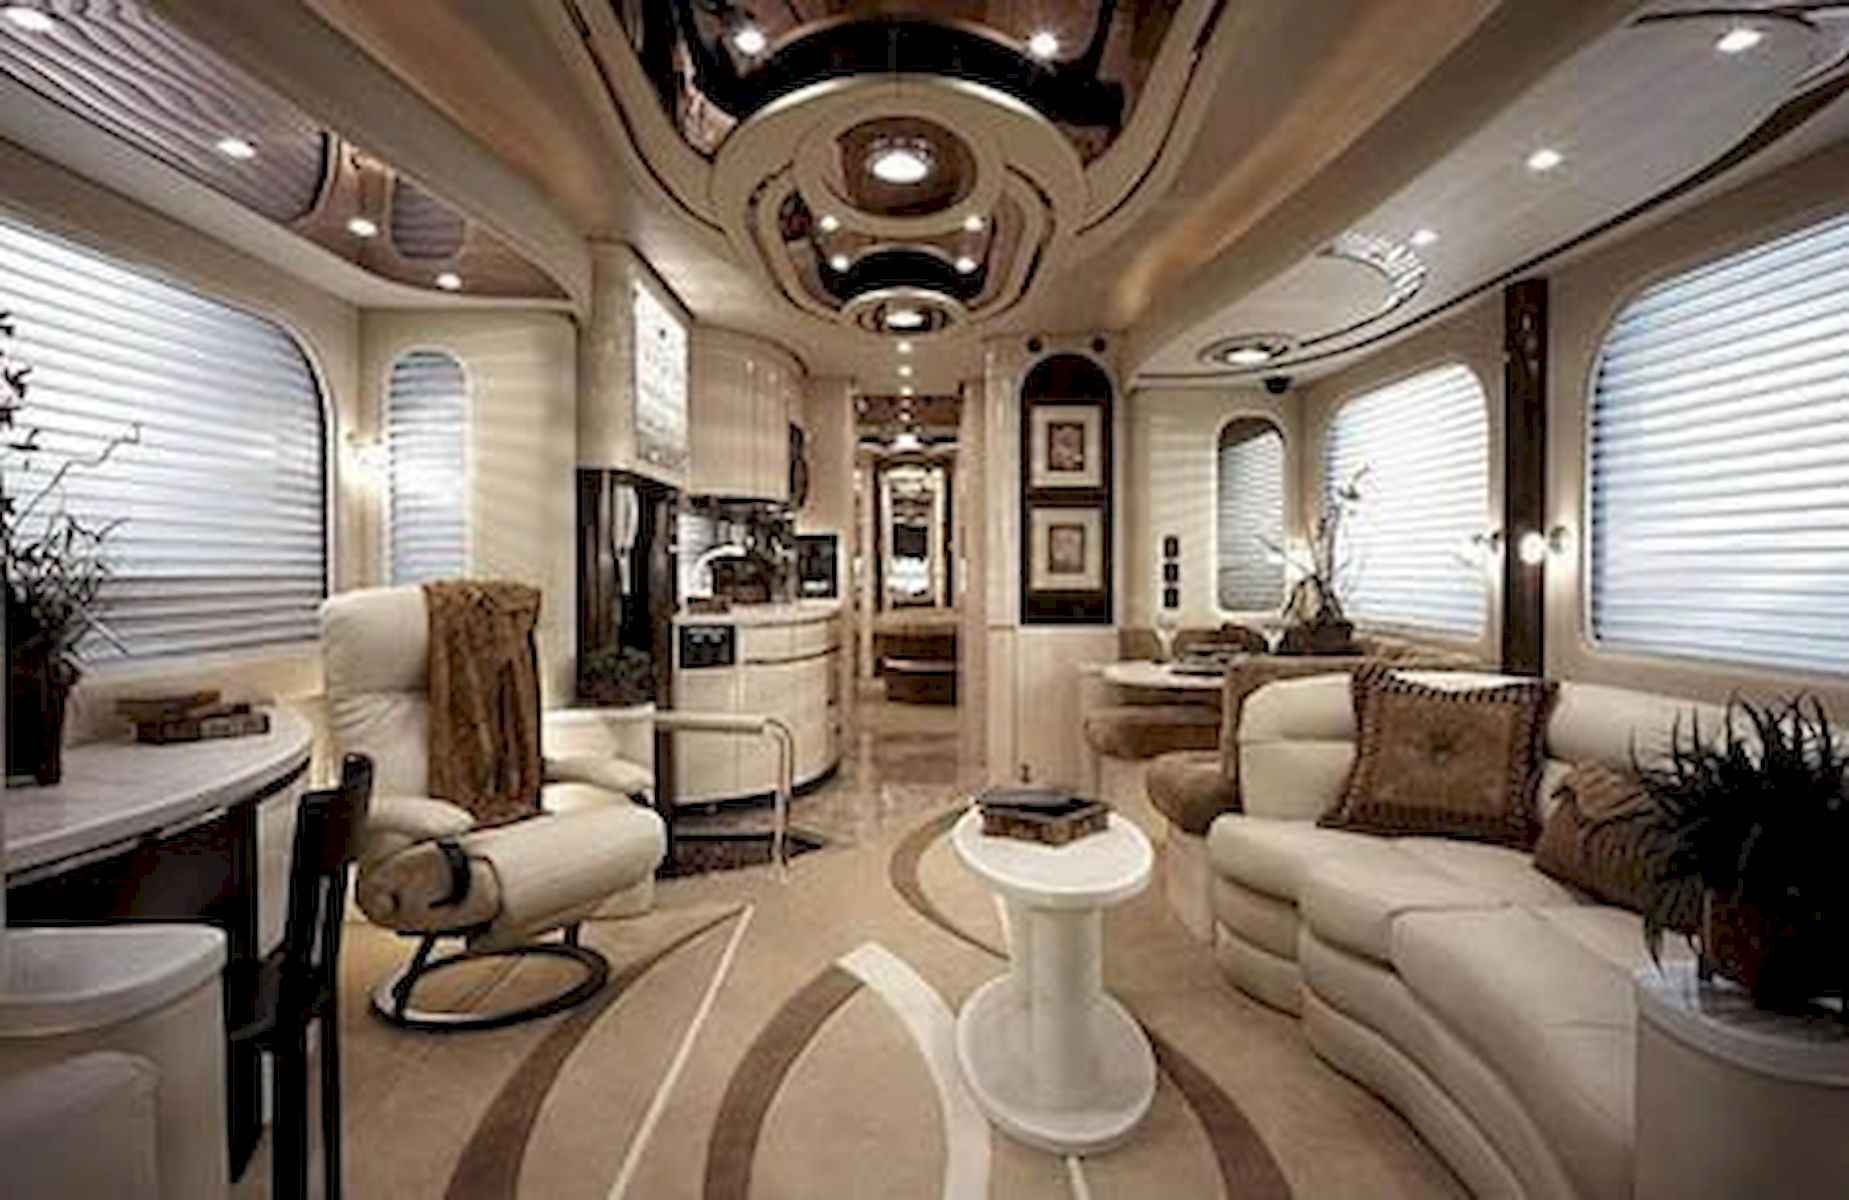 70 Stunning RV Living Camper Room Ideas Decorations Make Your Summer Awesome (21)